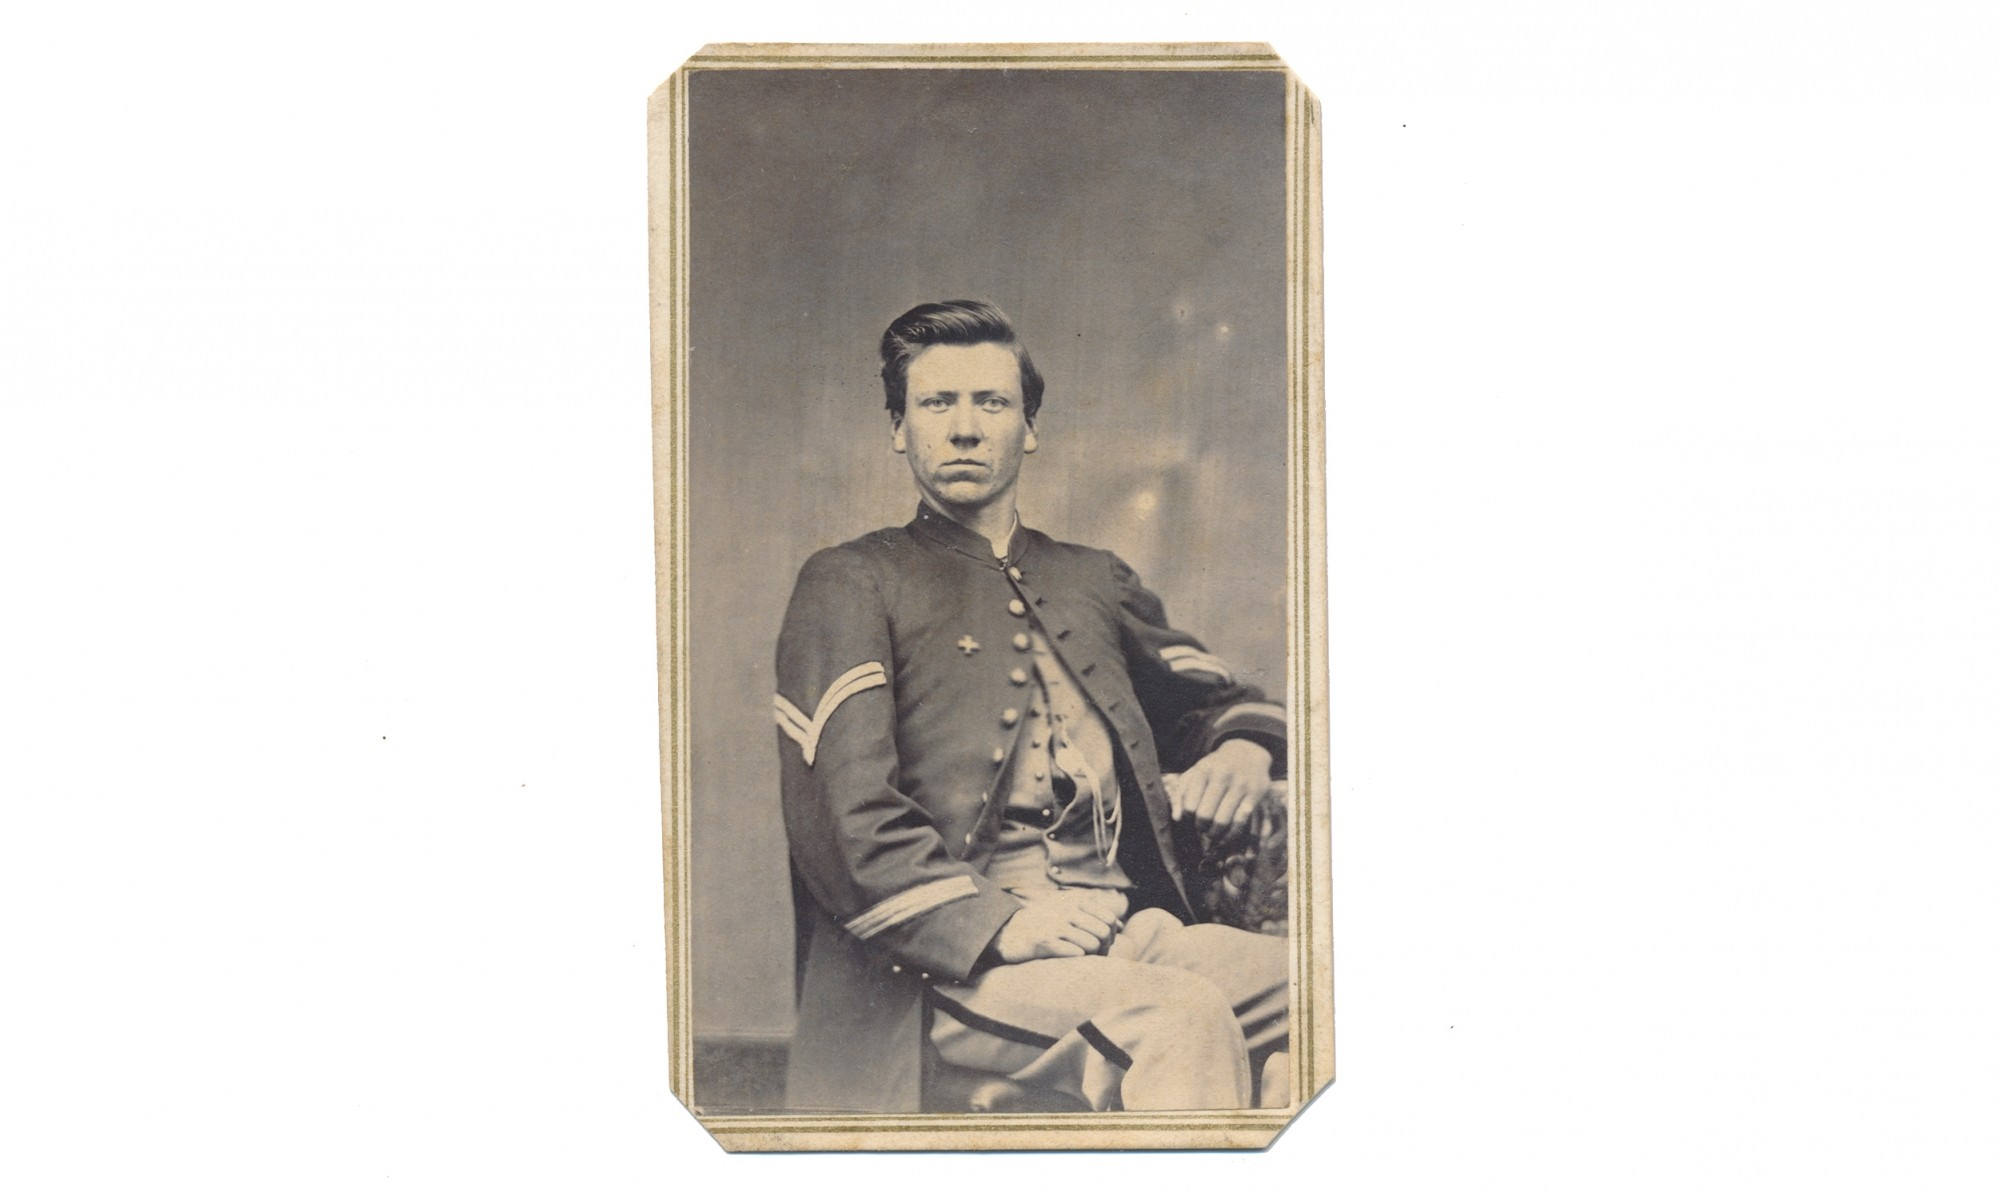 THREE-QUARTER SEATED VIEW CDV OF 4TH VERMONT CASUALTY